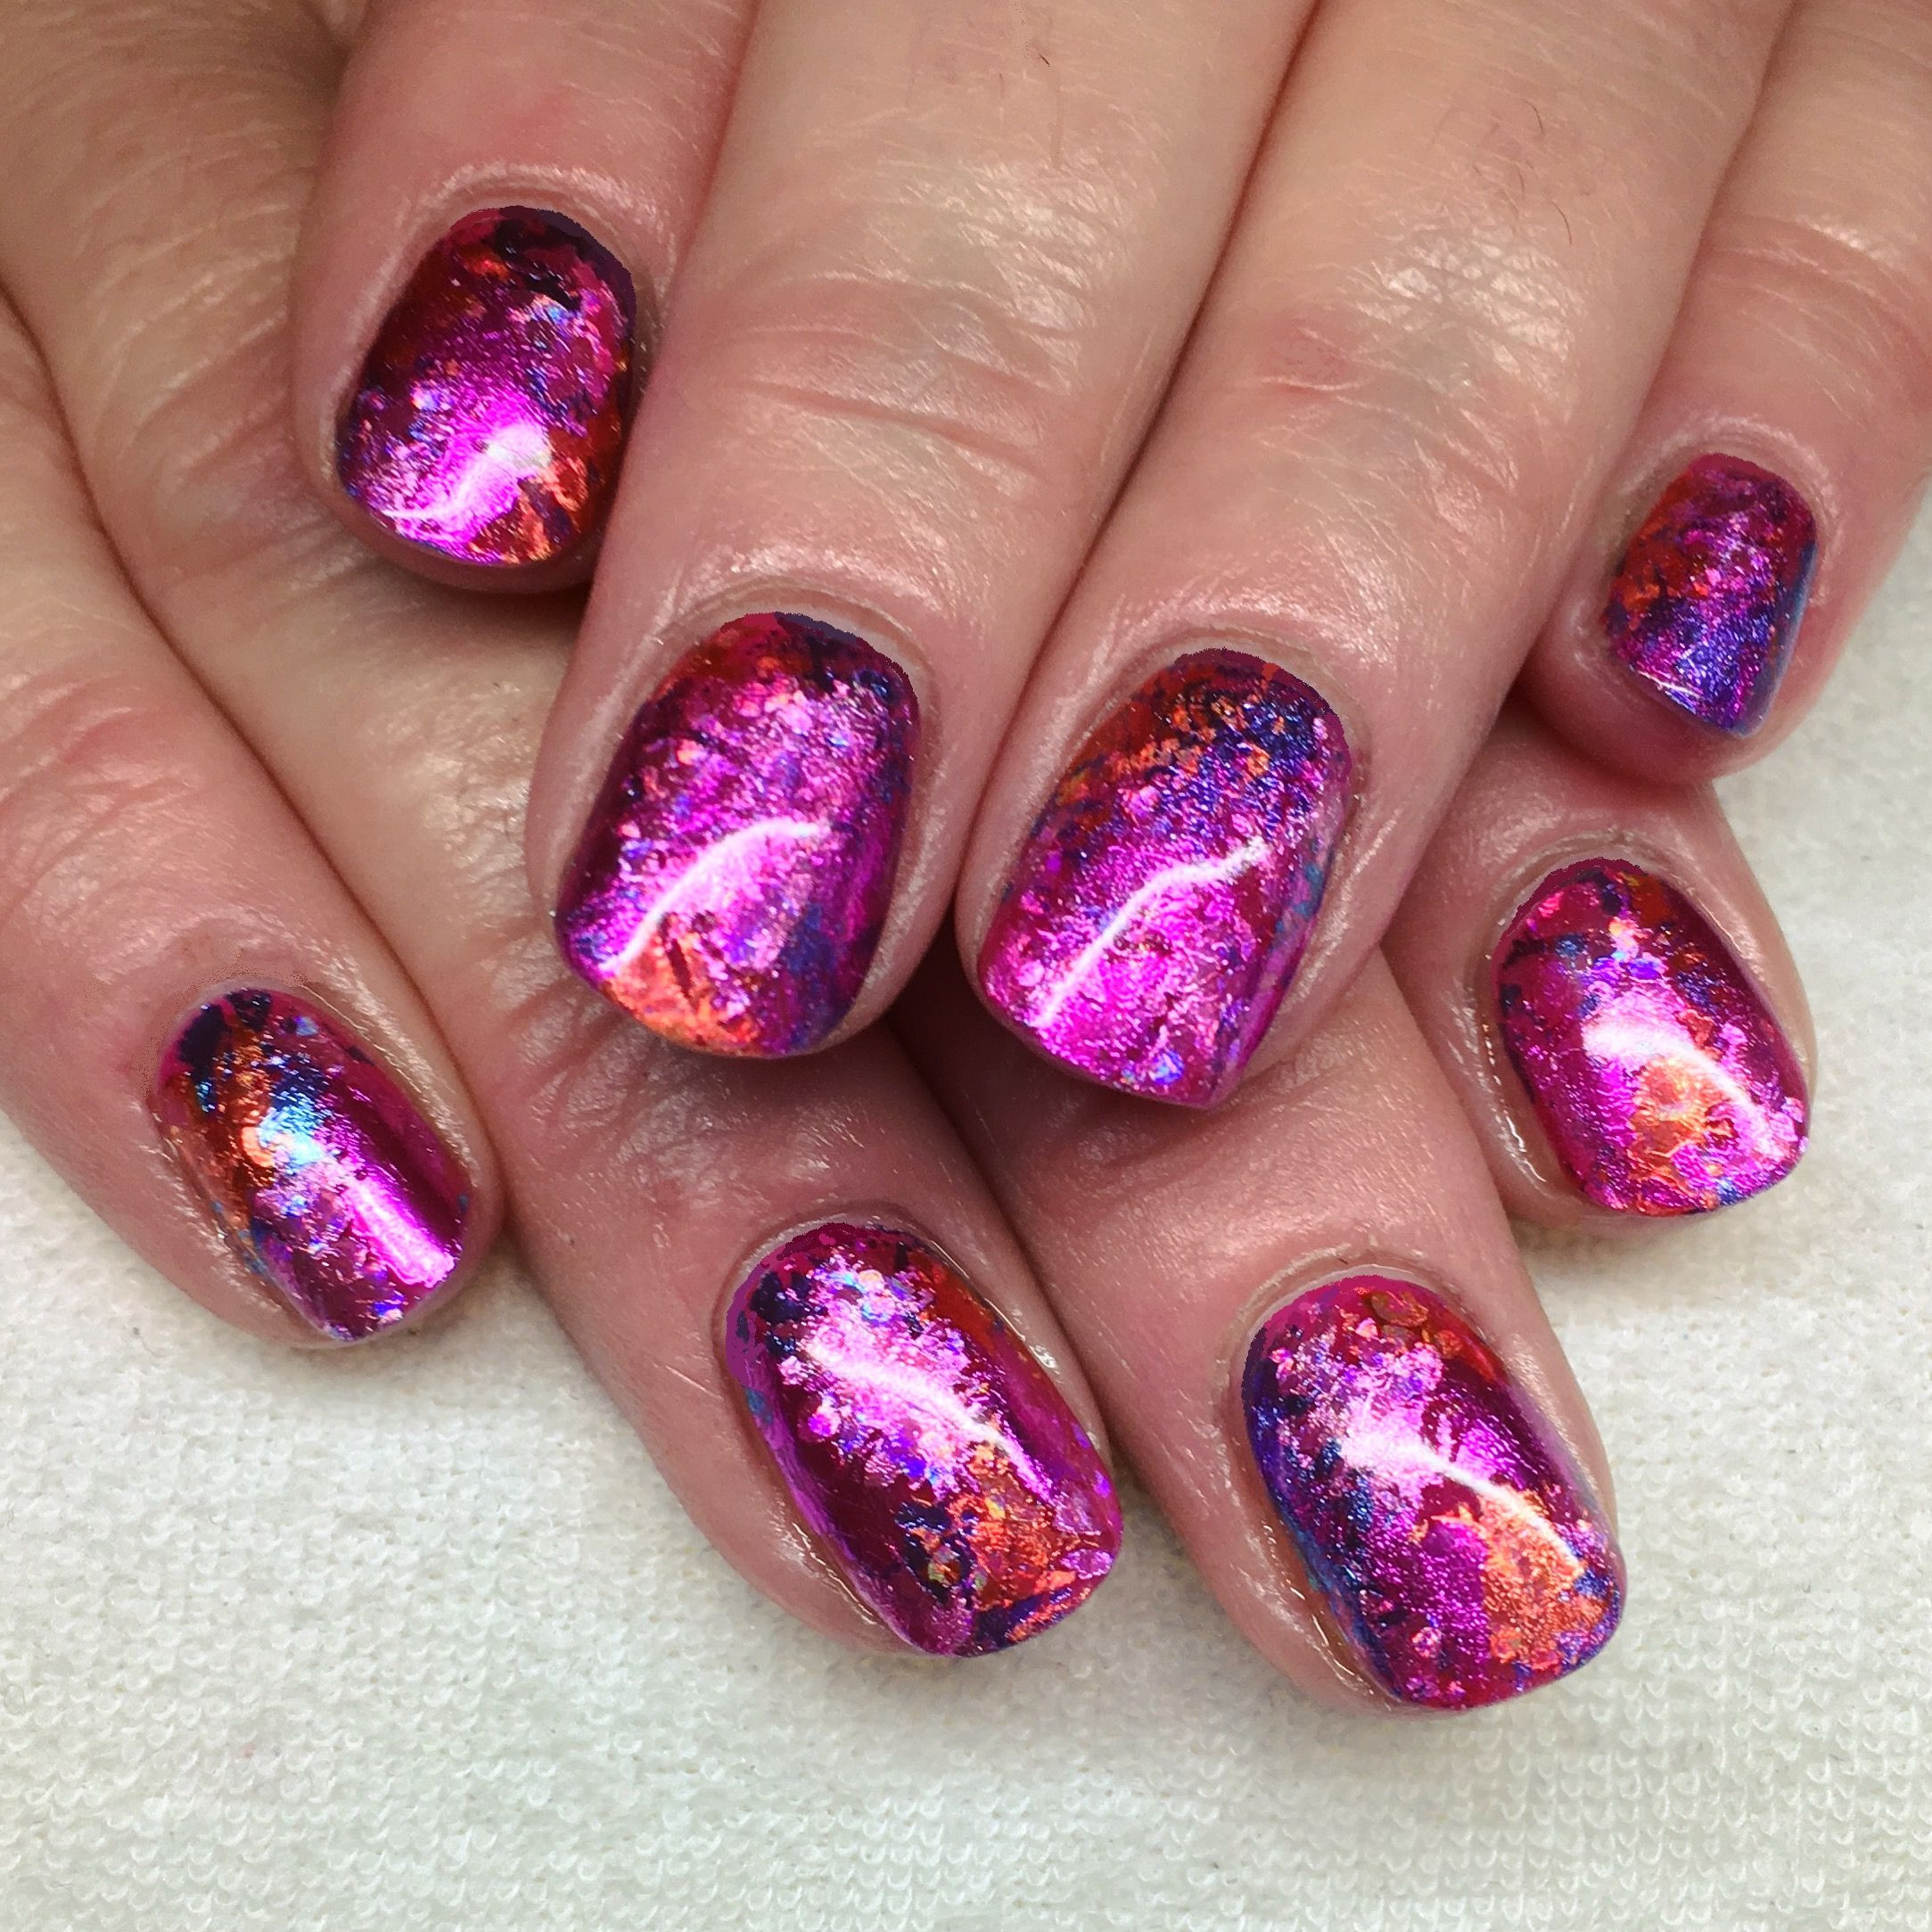 Pink Shellac Nail Designs  CND Shellac Pink Leggings with a Lecente Foil Sandwich in